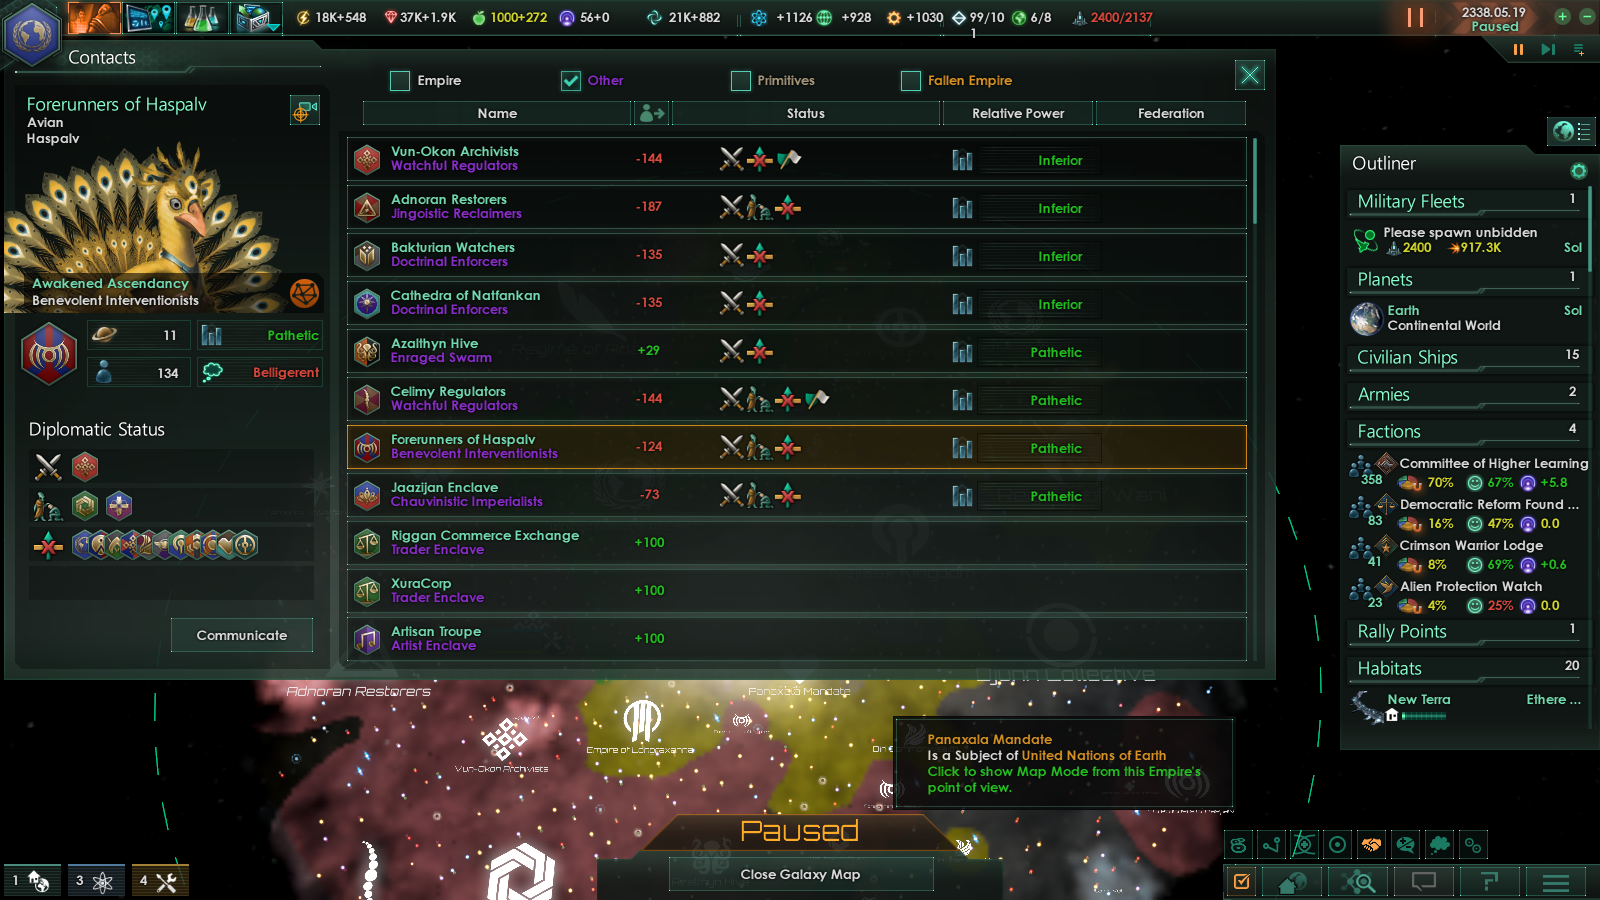 Steam Community Guide 191 The One Planet Strategy Strat 4 Way Switch Options For This Setup Harmony Central Using Fallen Empires Expanded V15 To Spawn 10 Fe After 2300 I Awoke All Of Them Console Command They Pretty Muchwhole Galaxy Except